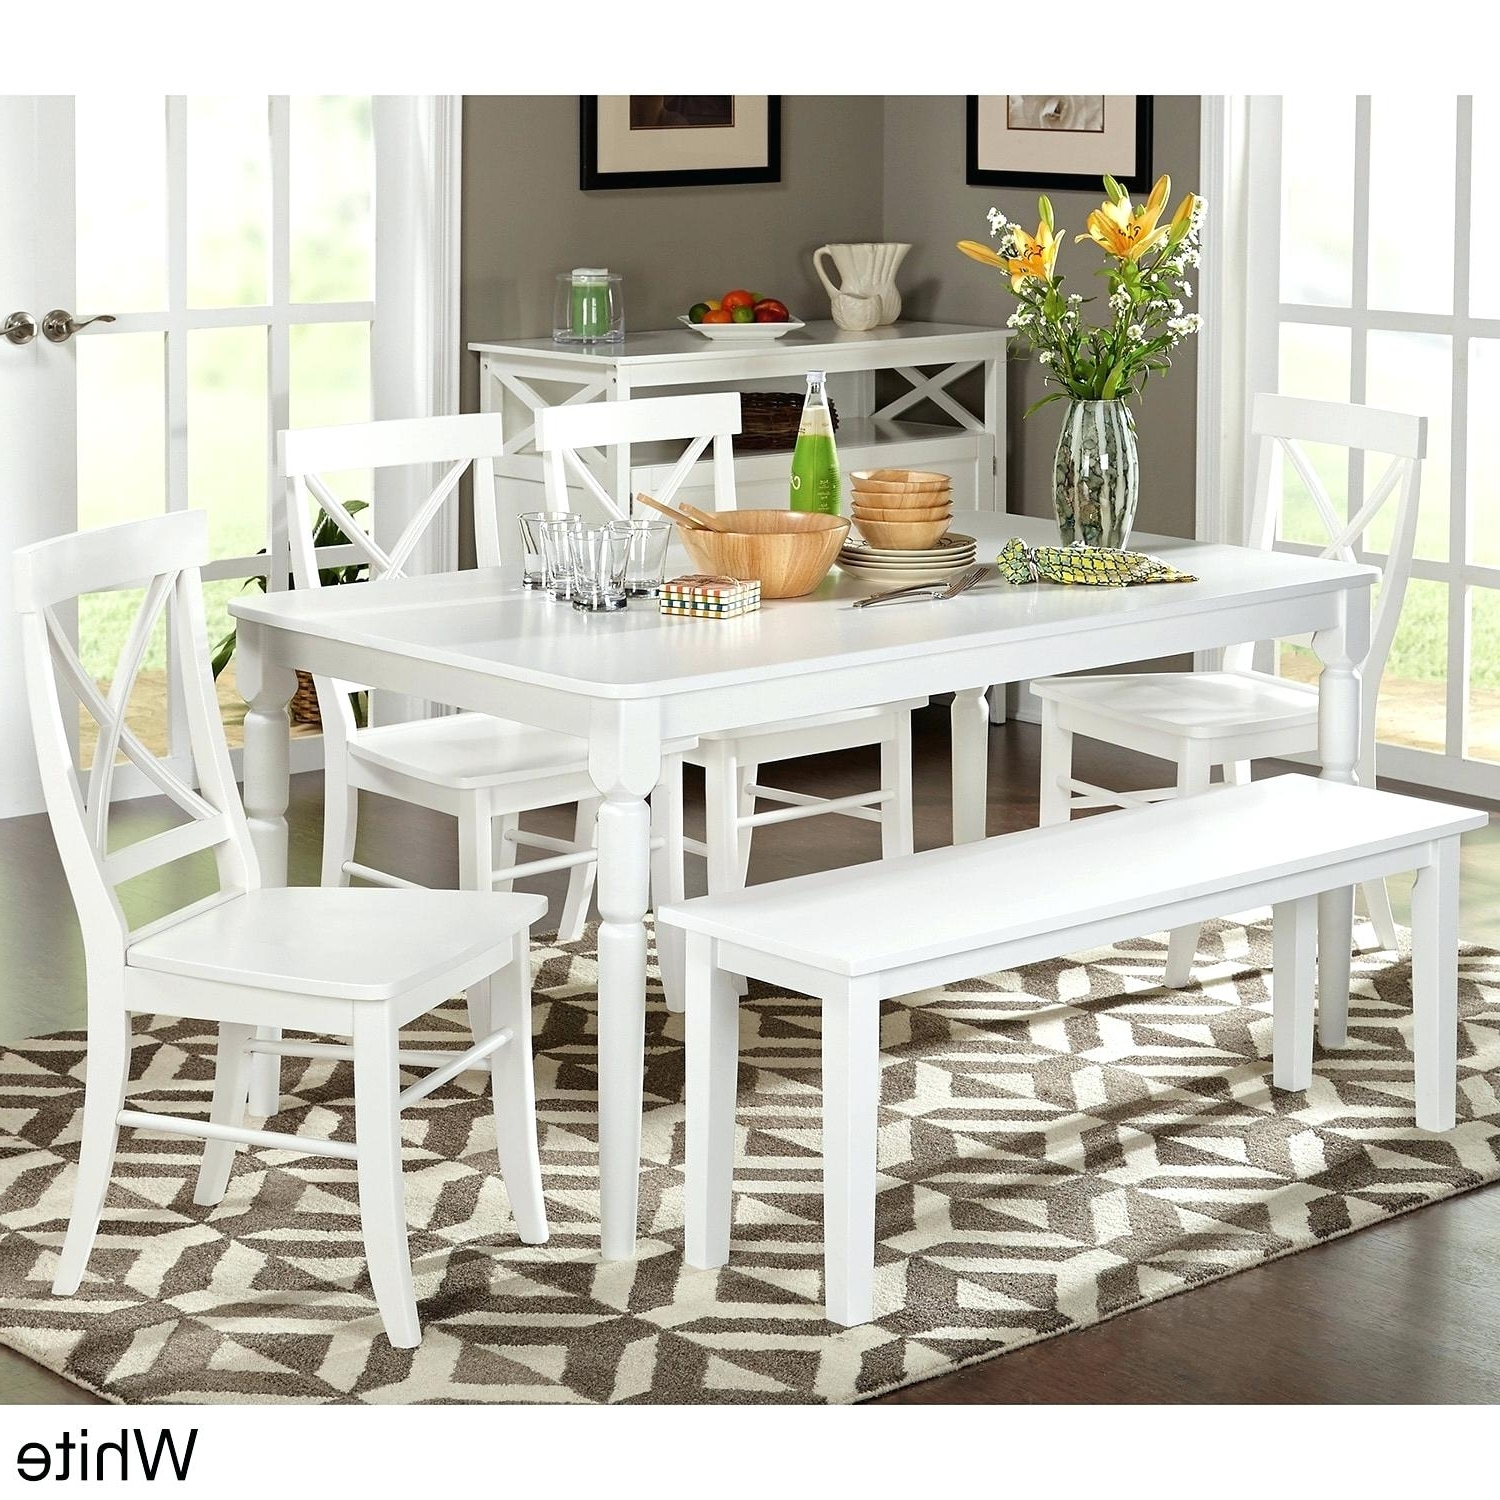 Imágenes De White Wooden Dining Room Table And Chairs regarding 2018 Combs 5 Piece 48 Inch Extension Dining Sets With Pearson White Chairs